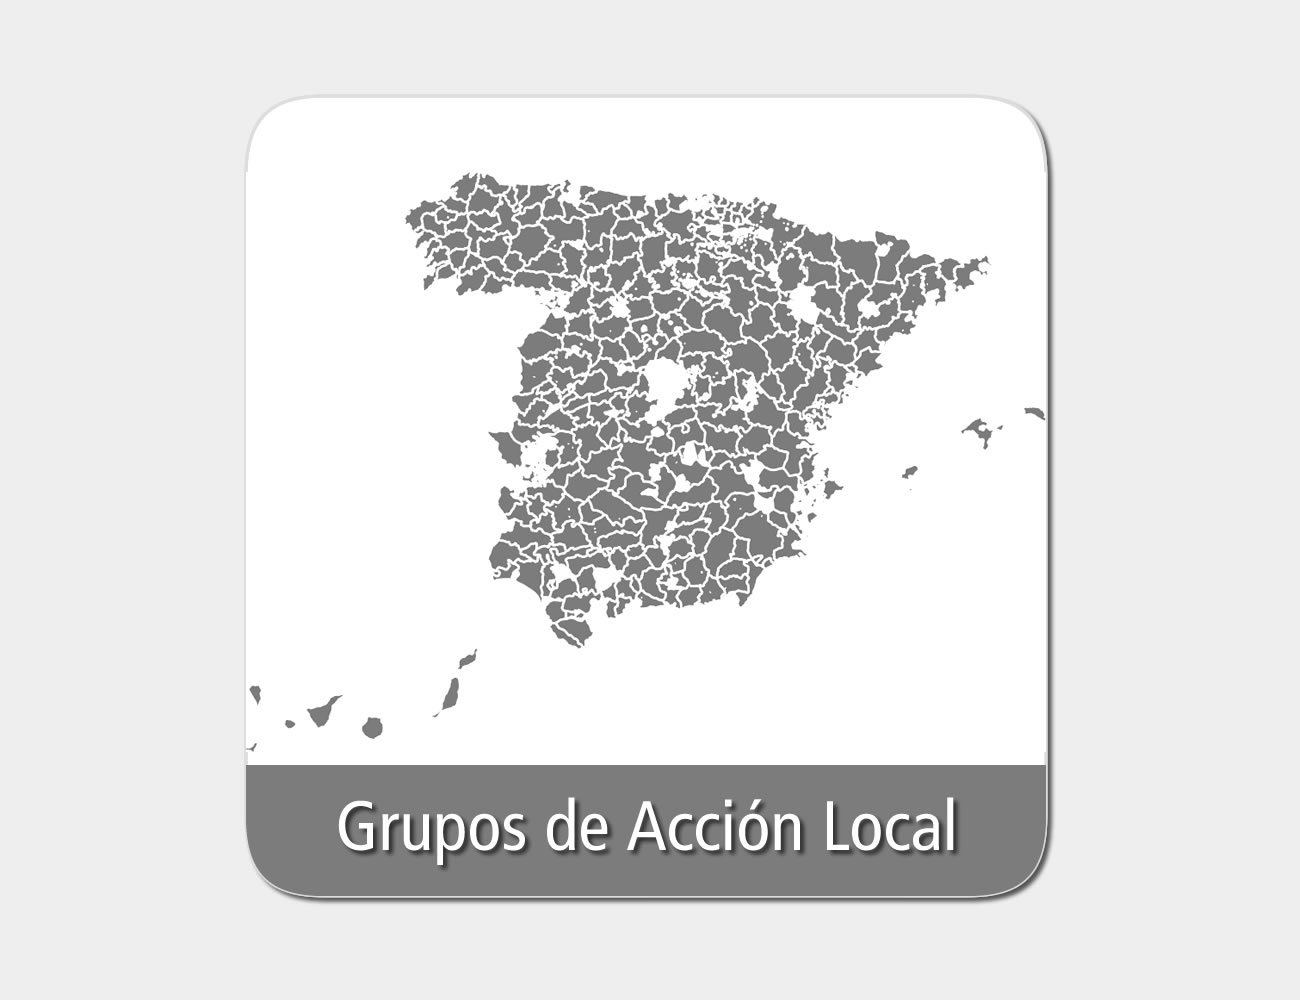 grupos_accion_local